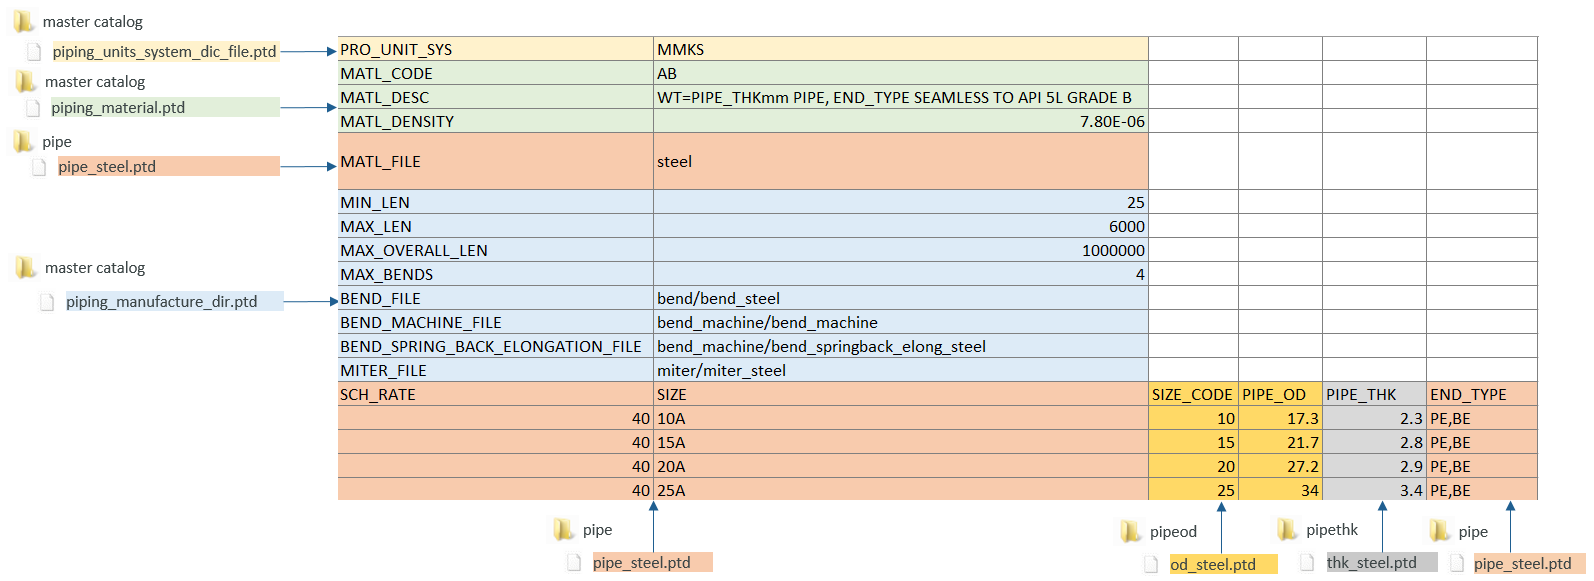 Migrating Piping Data from Legacy PTD Files to CSV Format